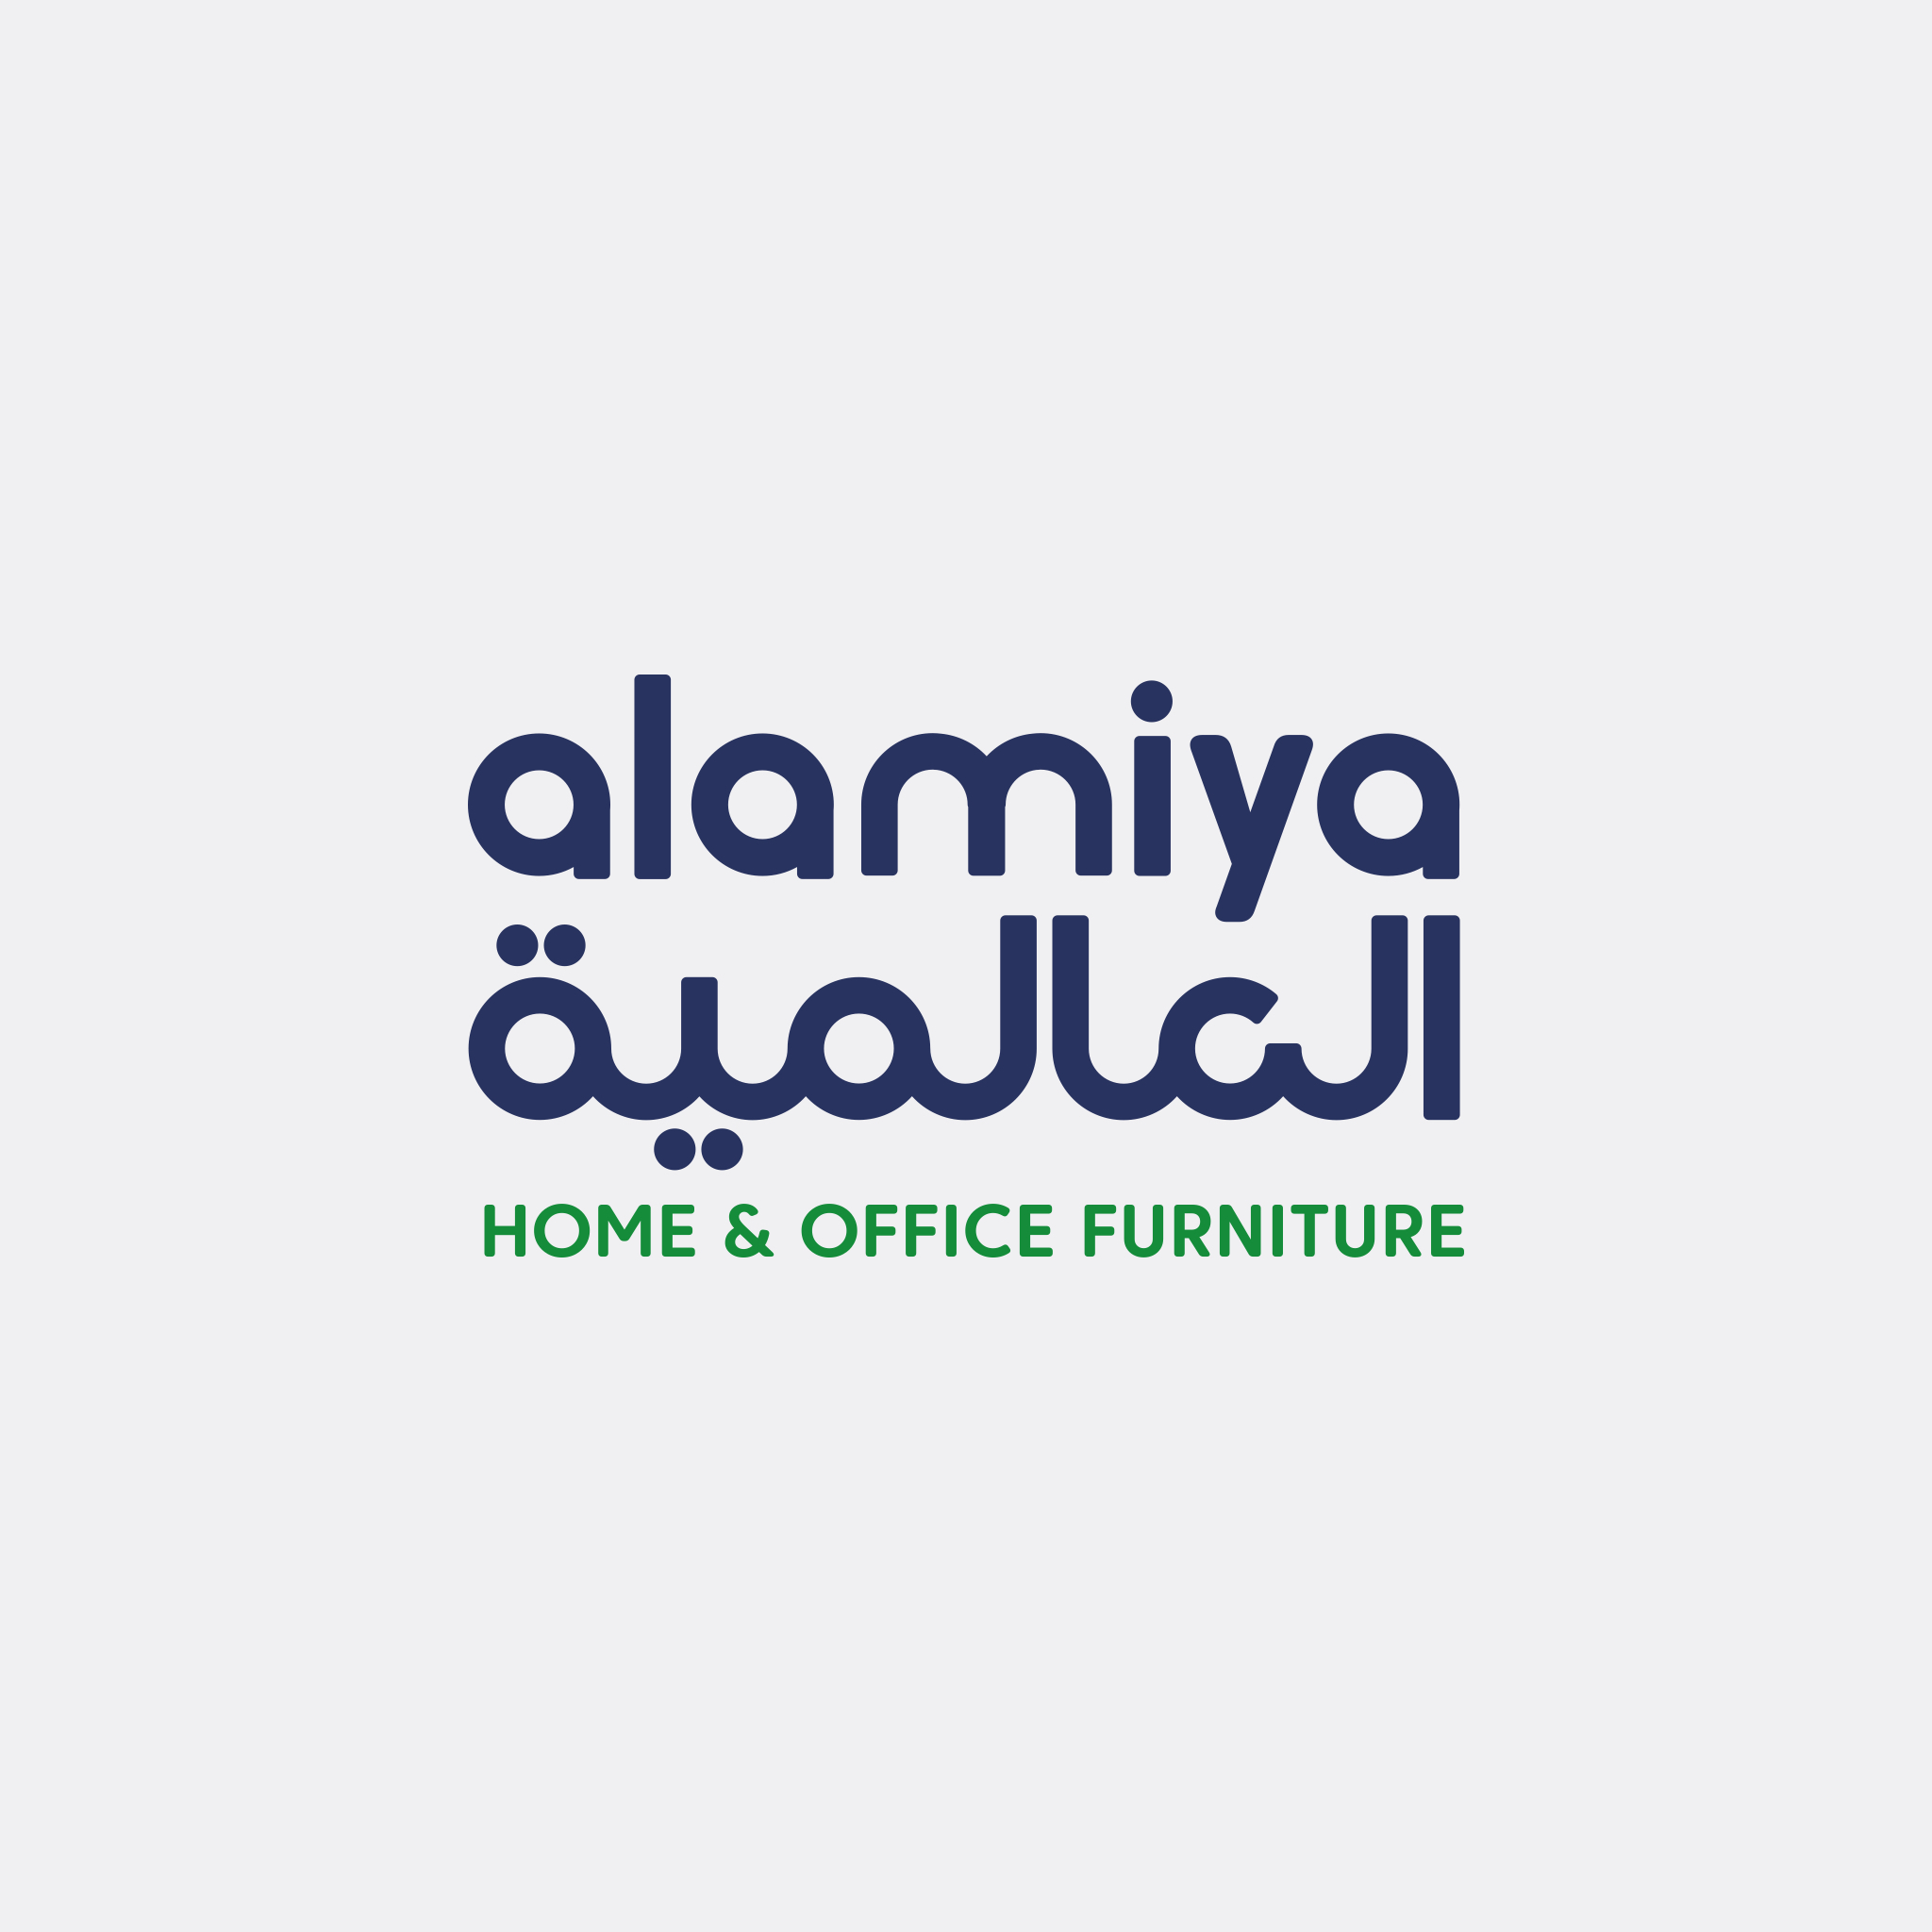 Alamiya Furniture Corporate Identity 2010